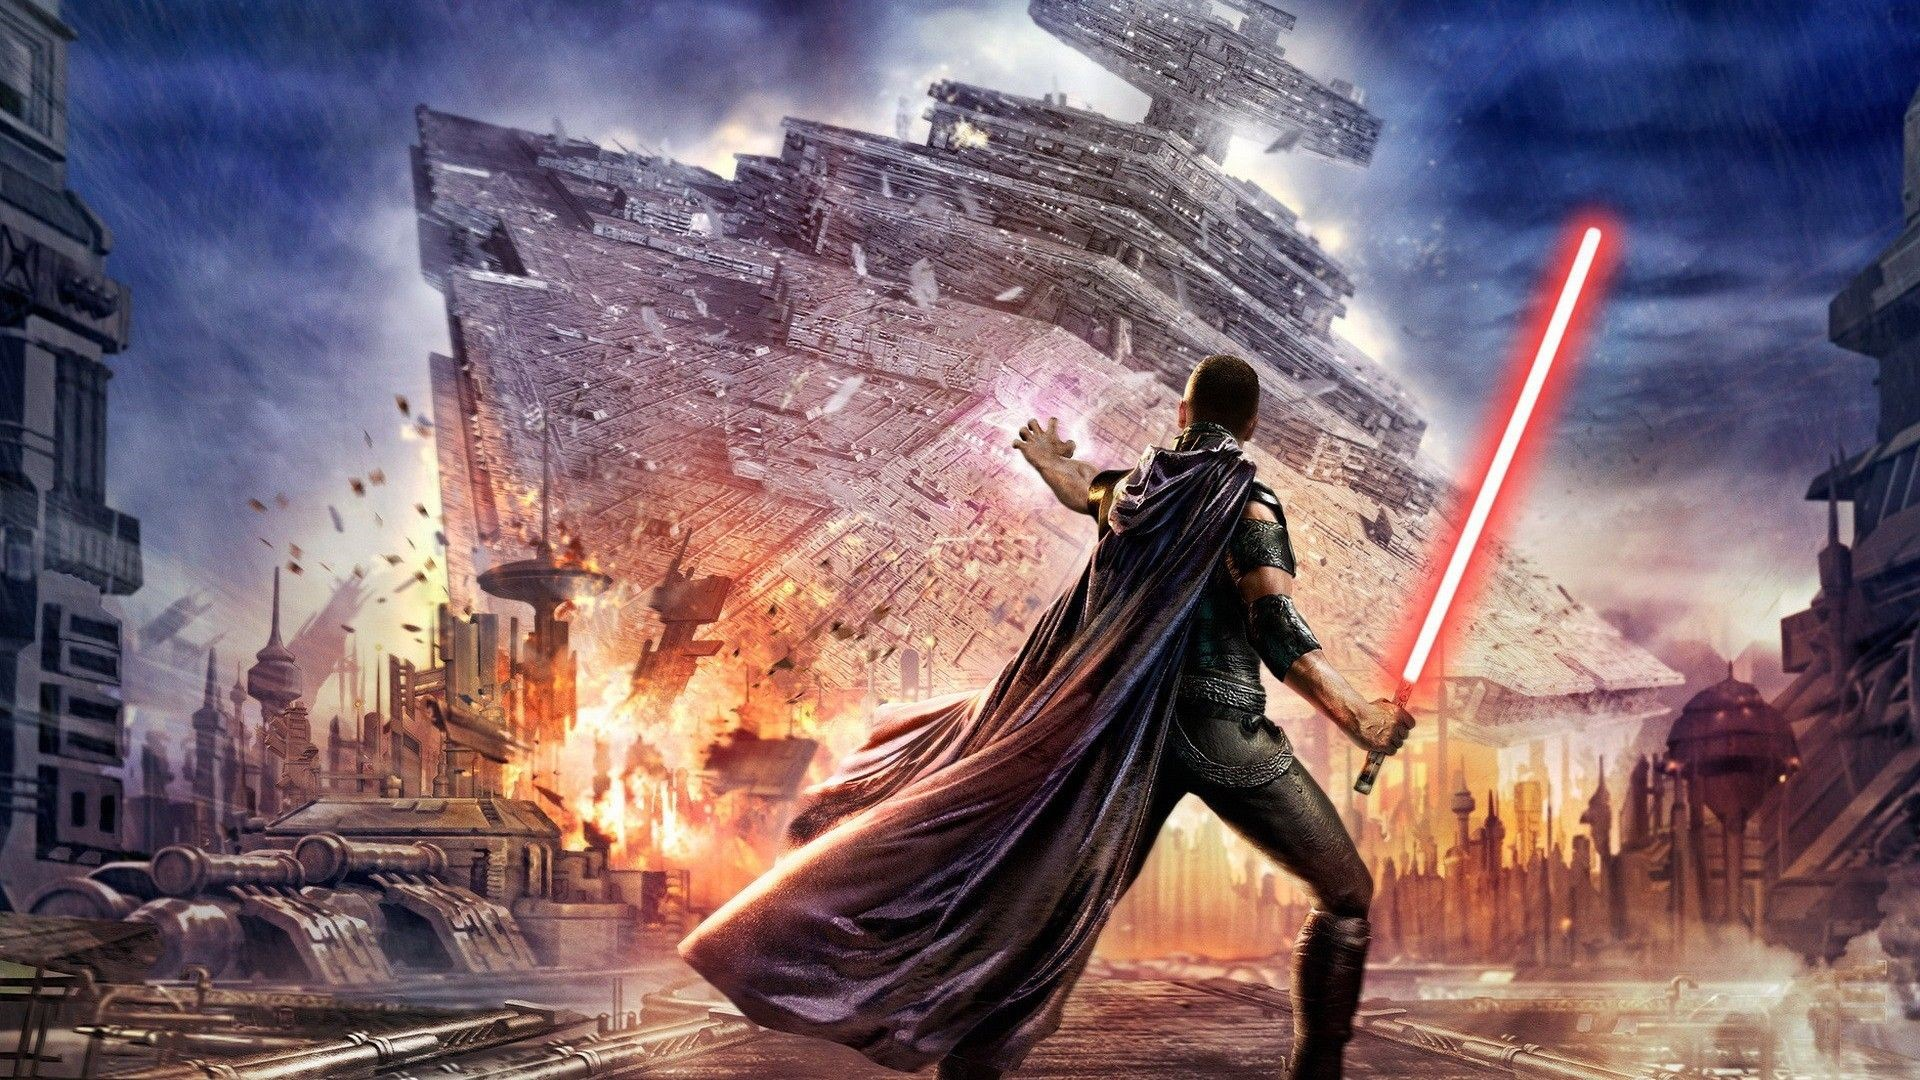 Star Wars Game 1080p Wallpapers Hd Wallpapers Hd Backgrounds Tumblr Backgrounds Images Pictures